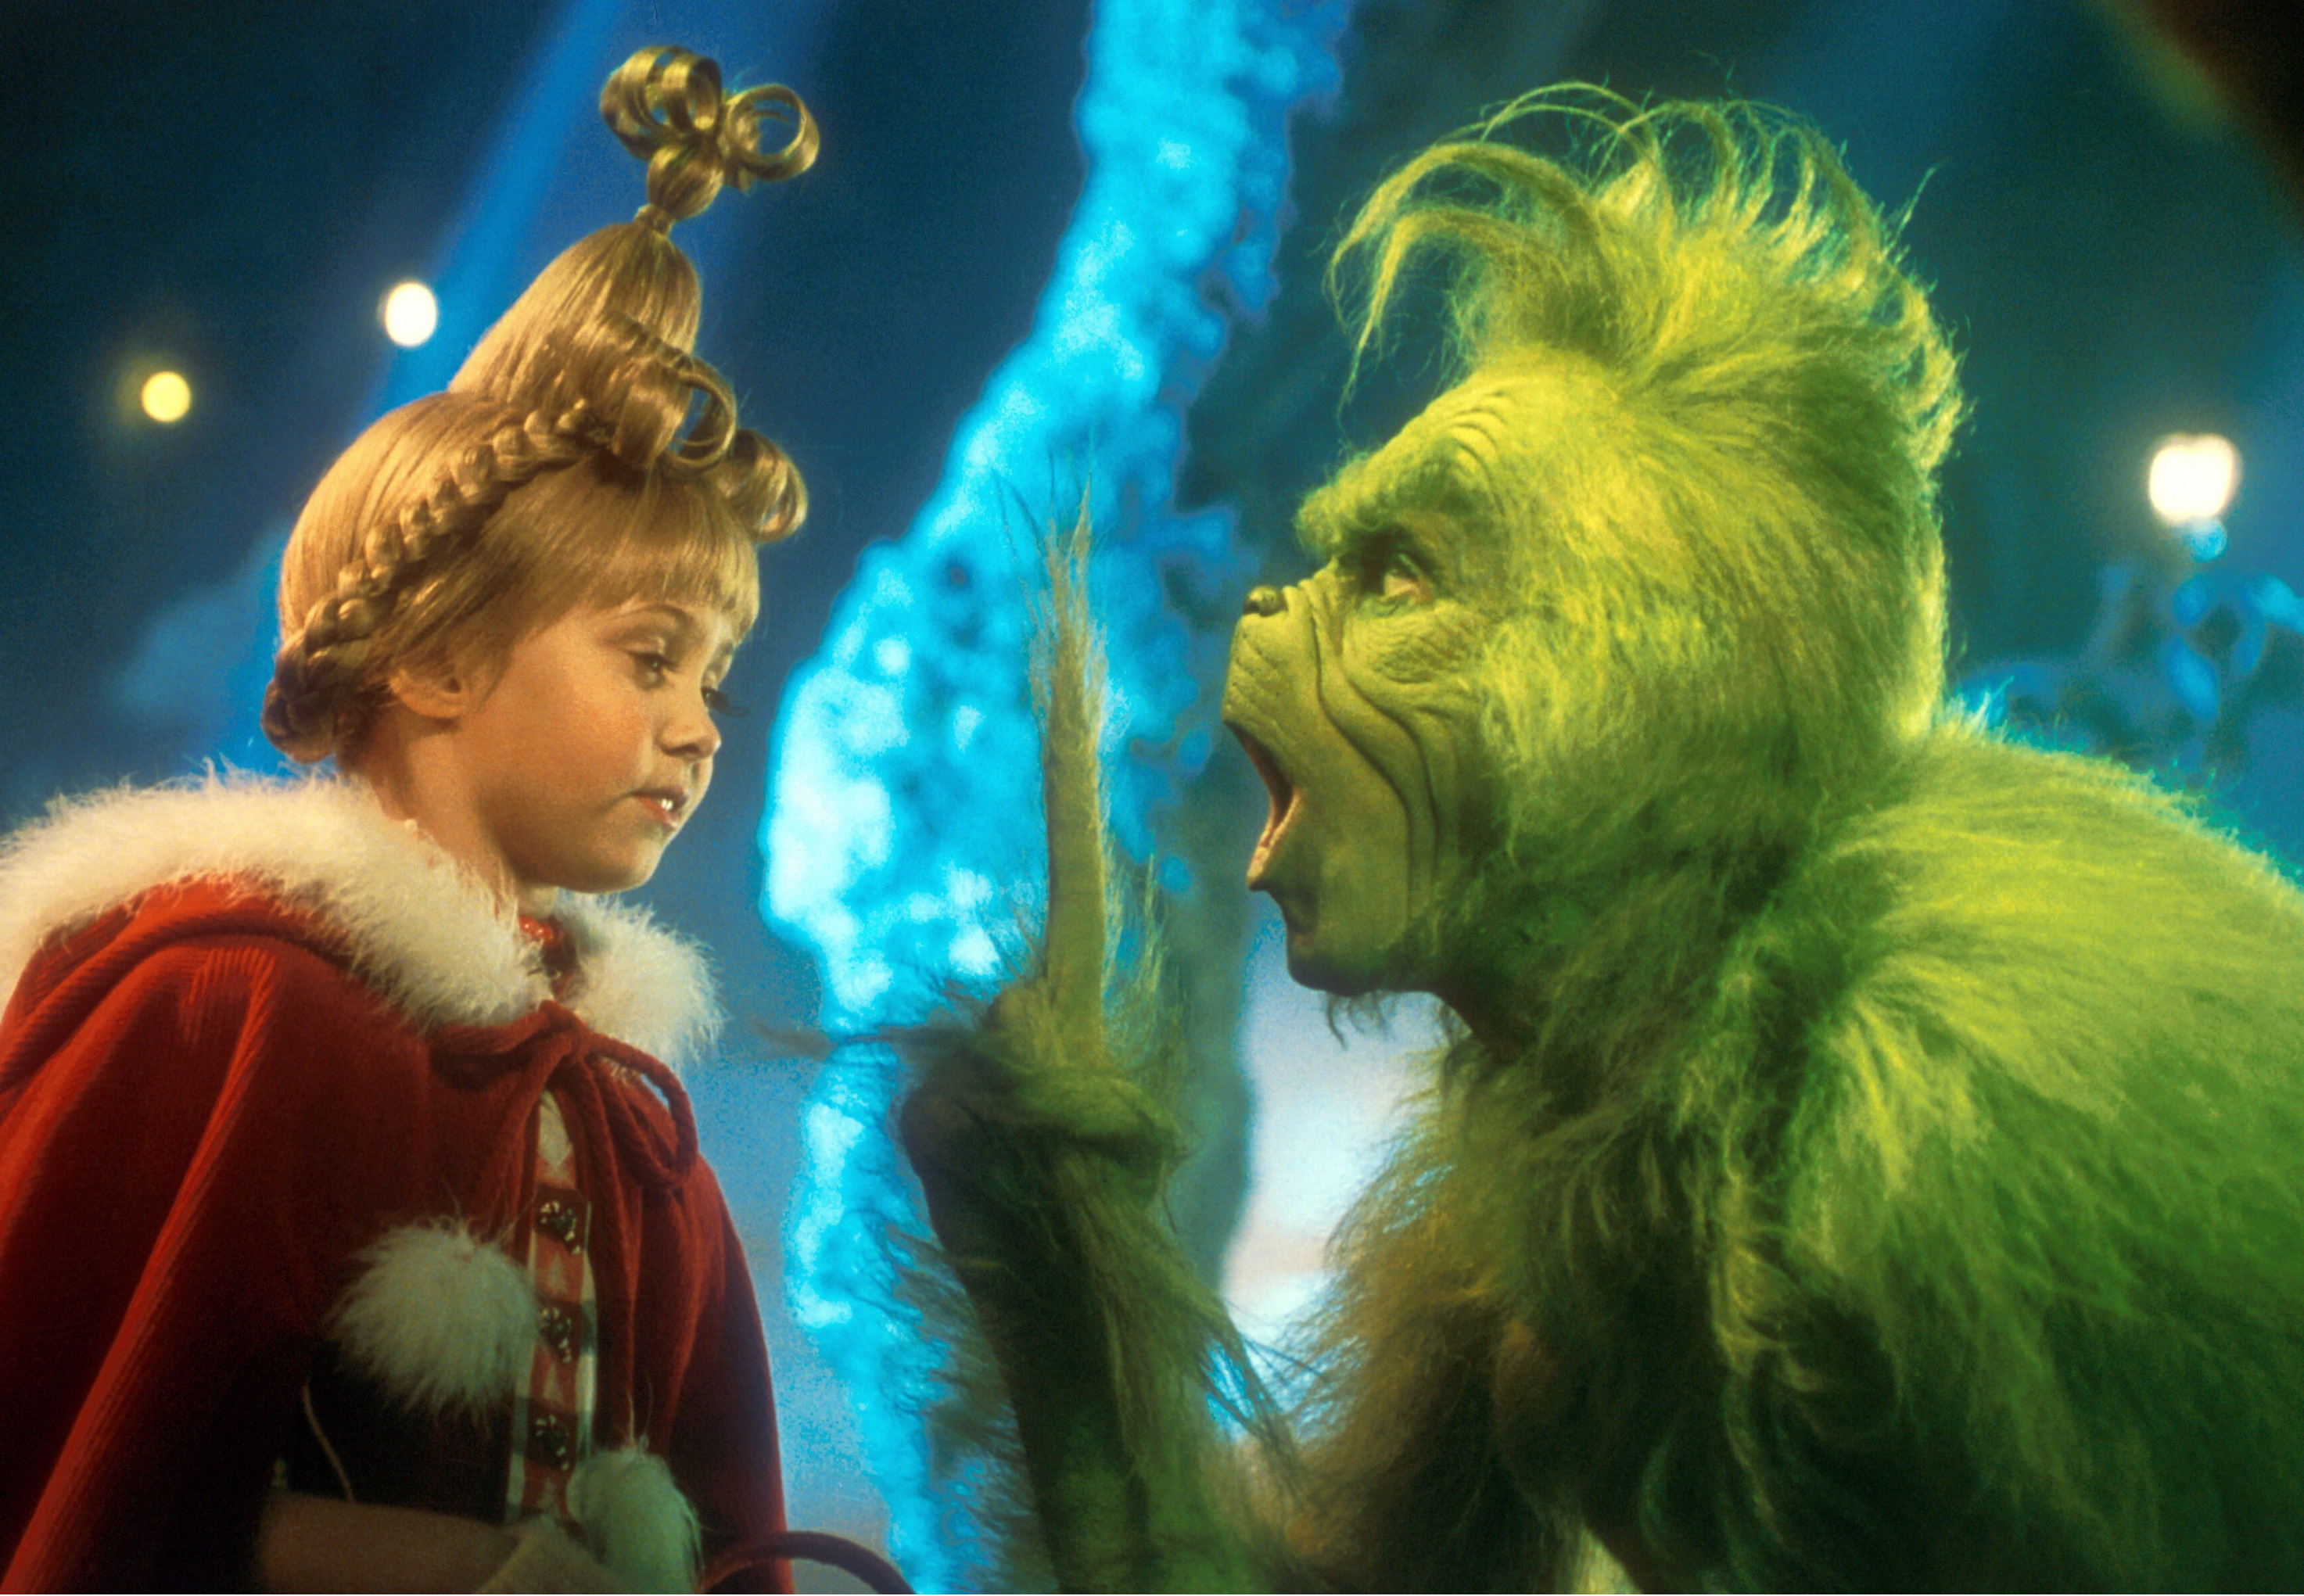 How the Grinch Stole Christmas cast   Where are they now